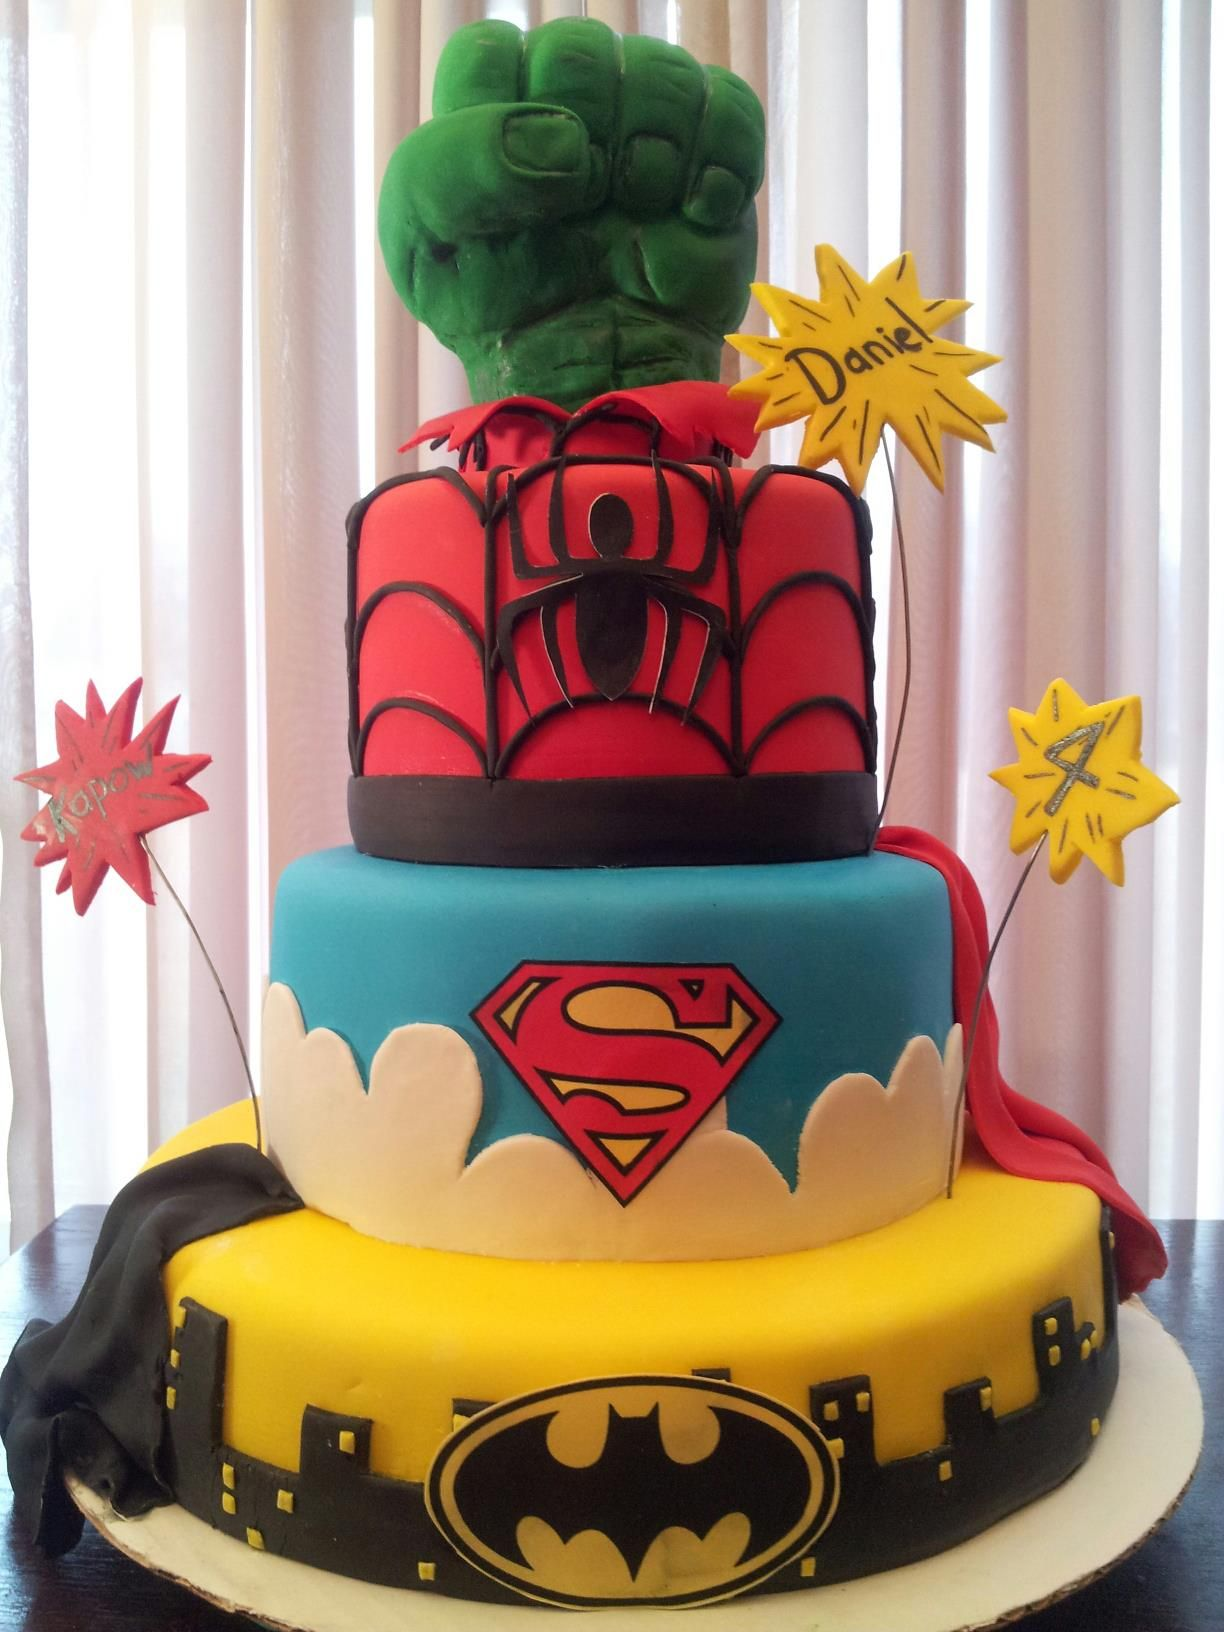 Super Hero Cake Superhero Cake Birthday Cakes For Men Birthday